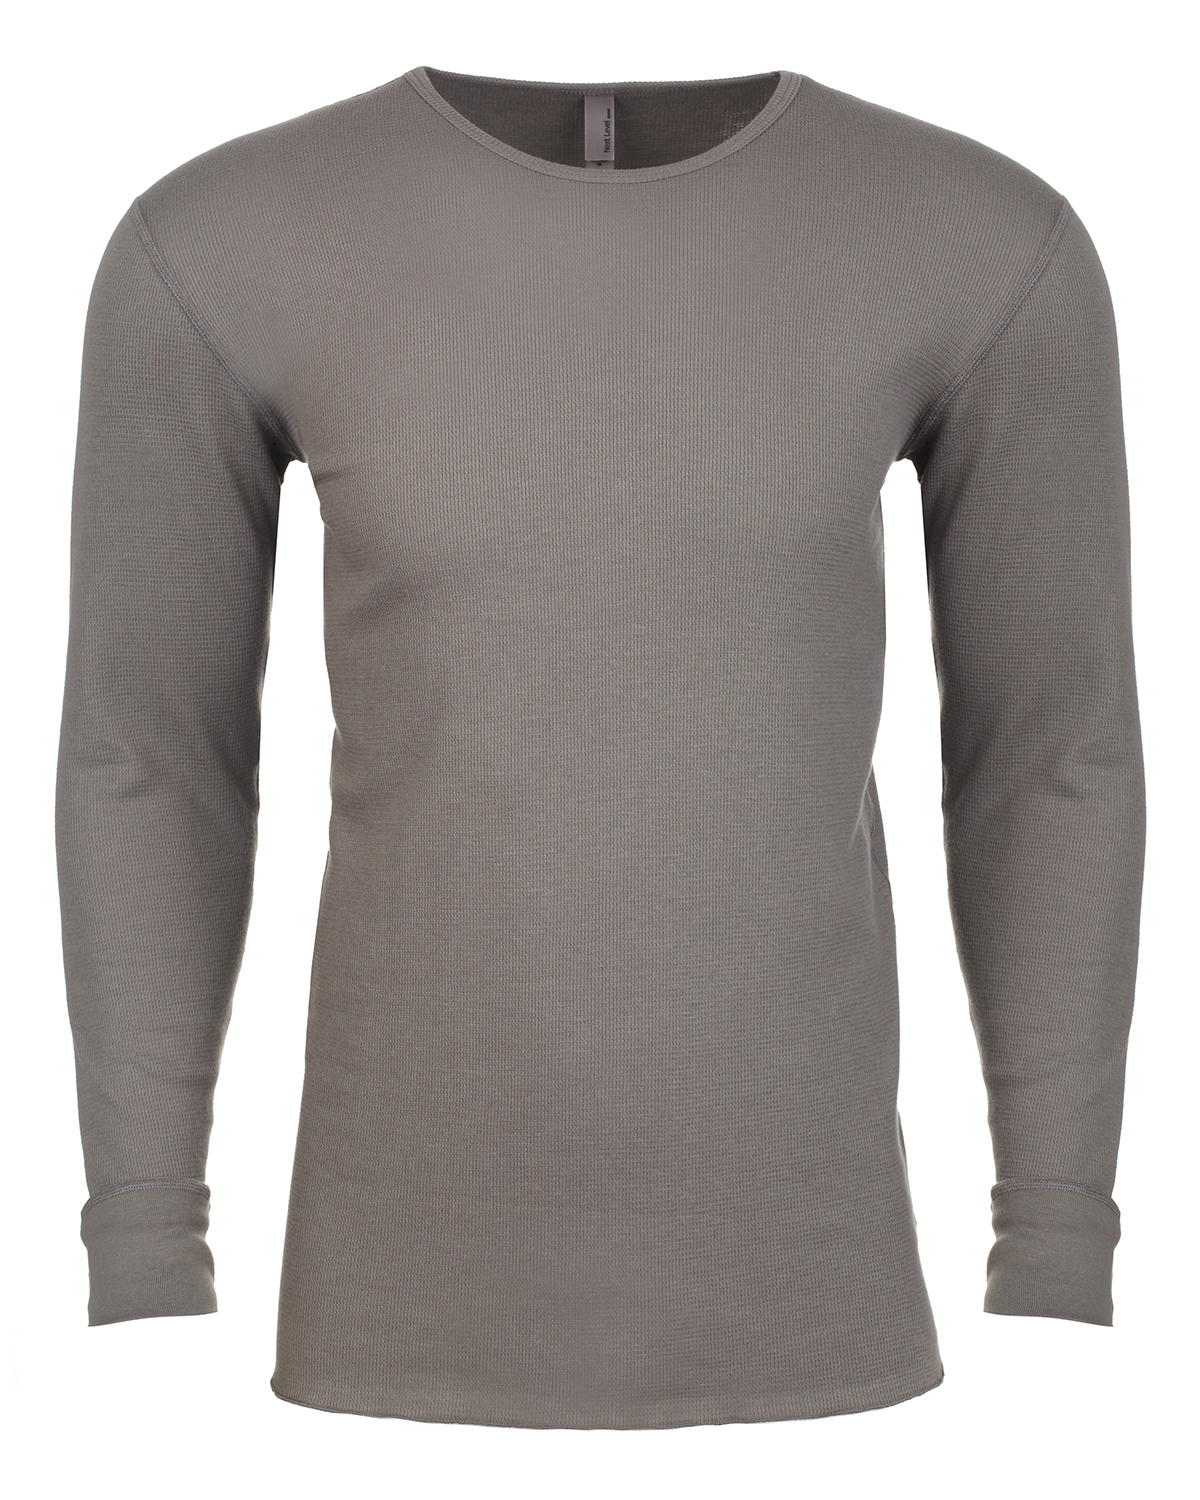 click to view WARM GRAY